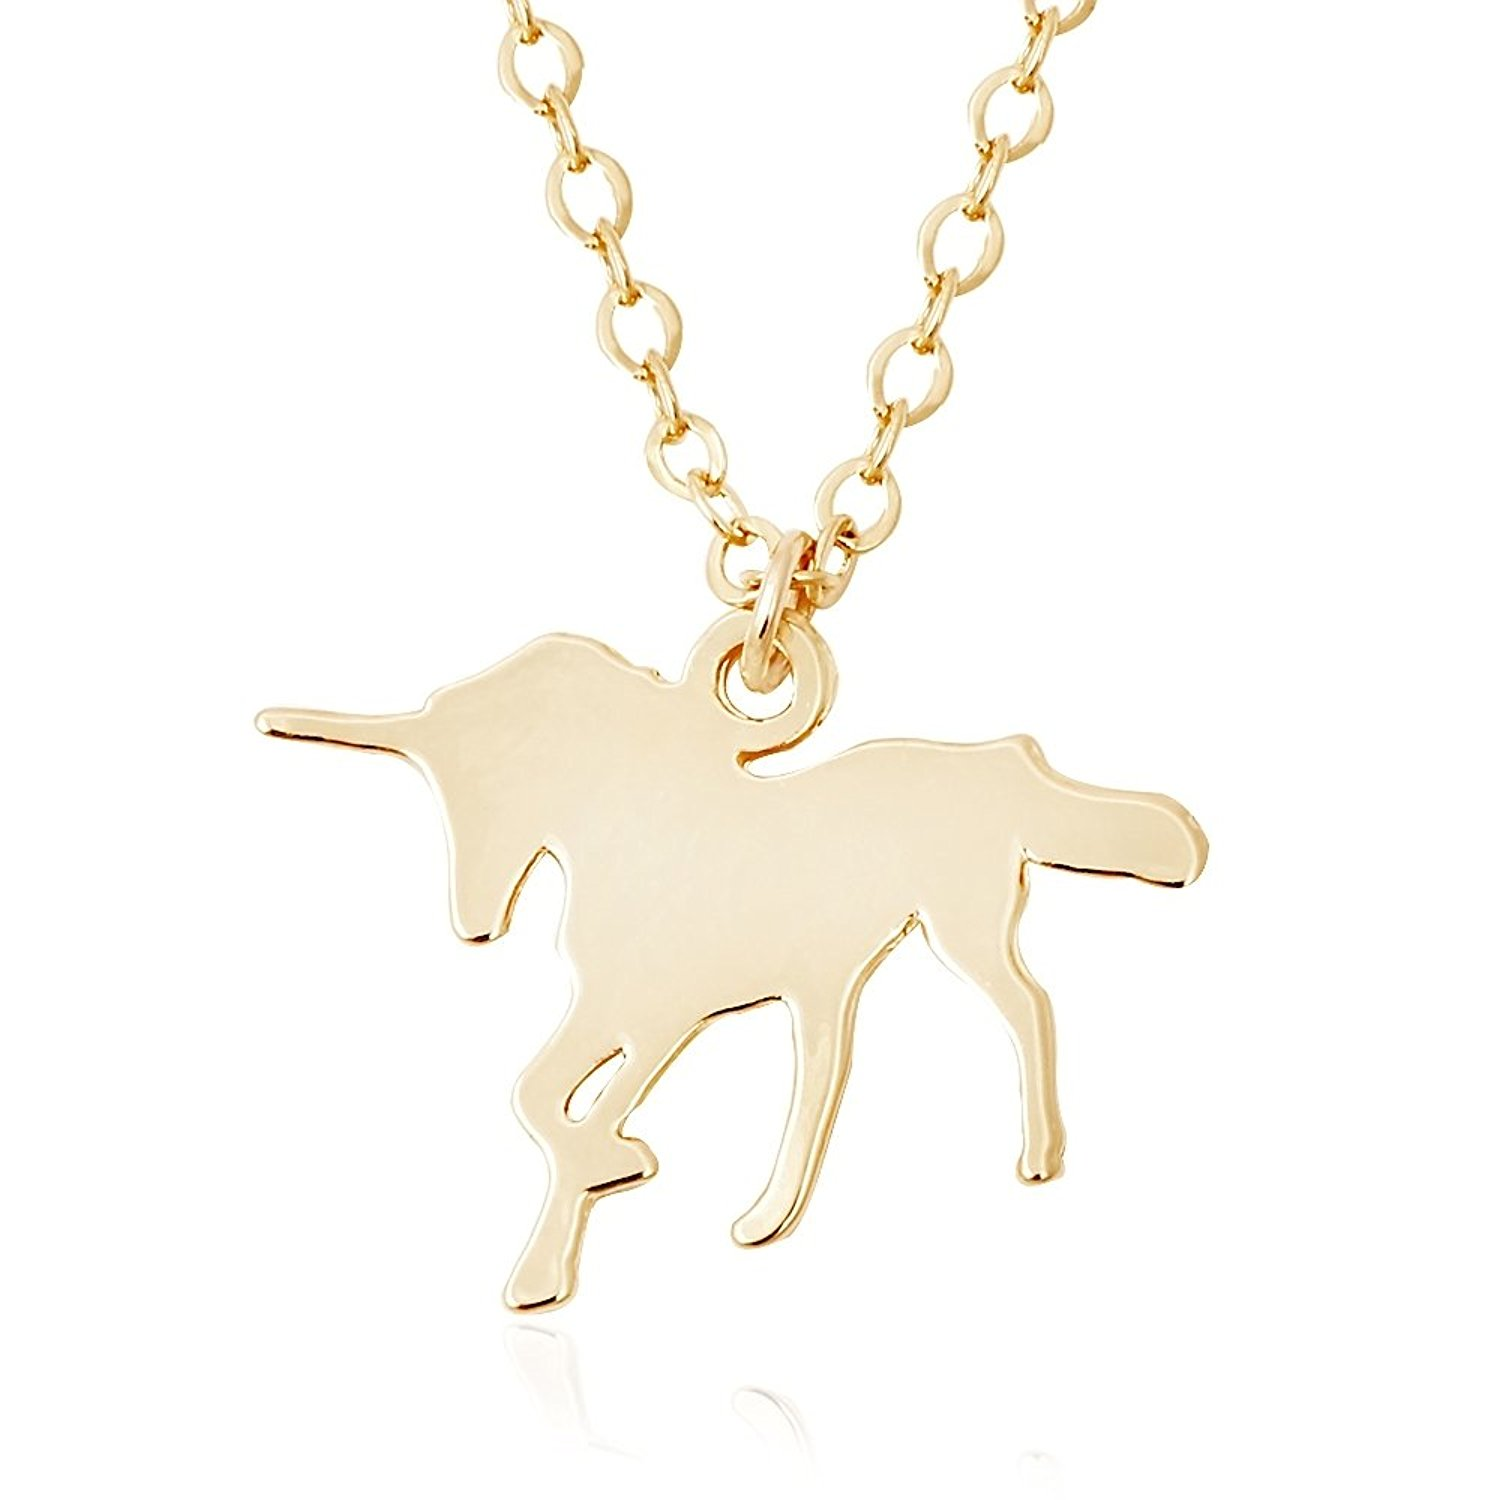 TUSHUO Simple Gold Plated Unicorn Pendant Necklace Best Unicorn Jewelry Gift for Unicorn Lover